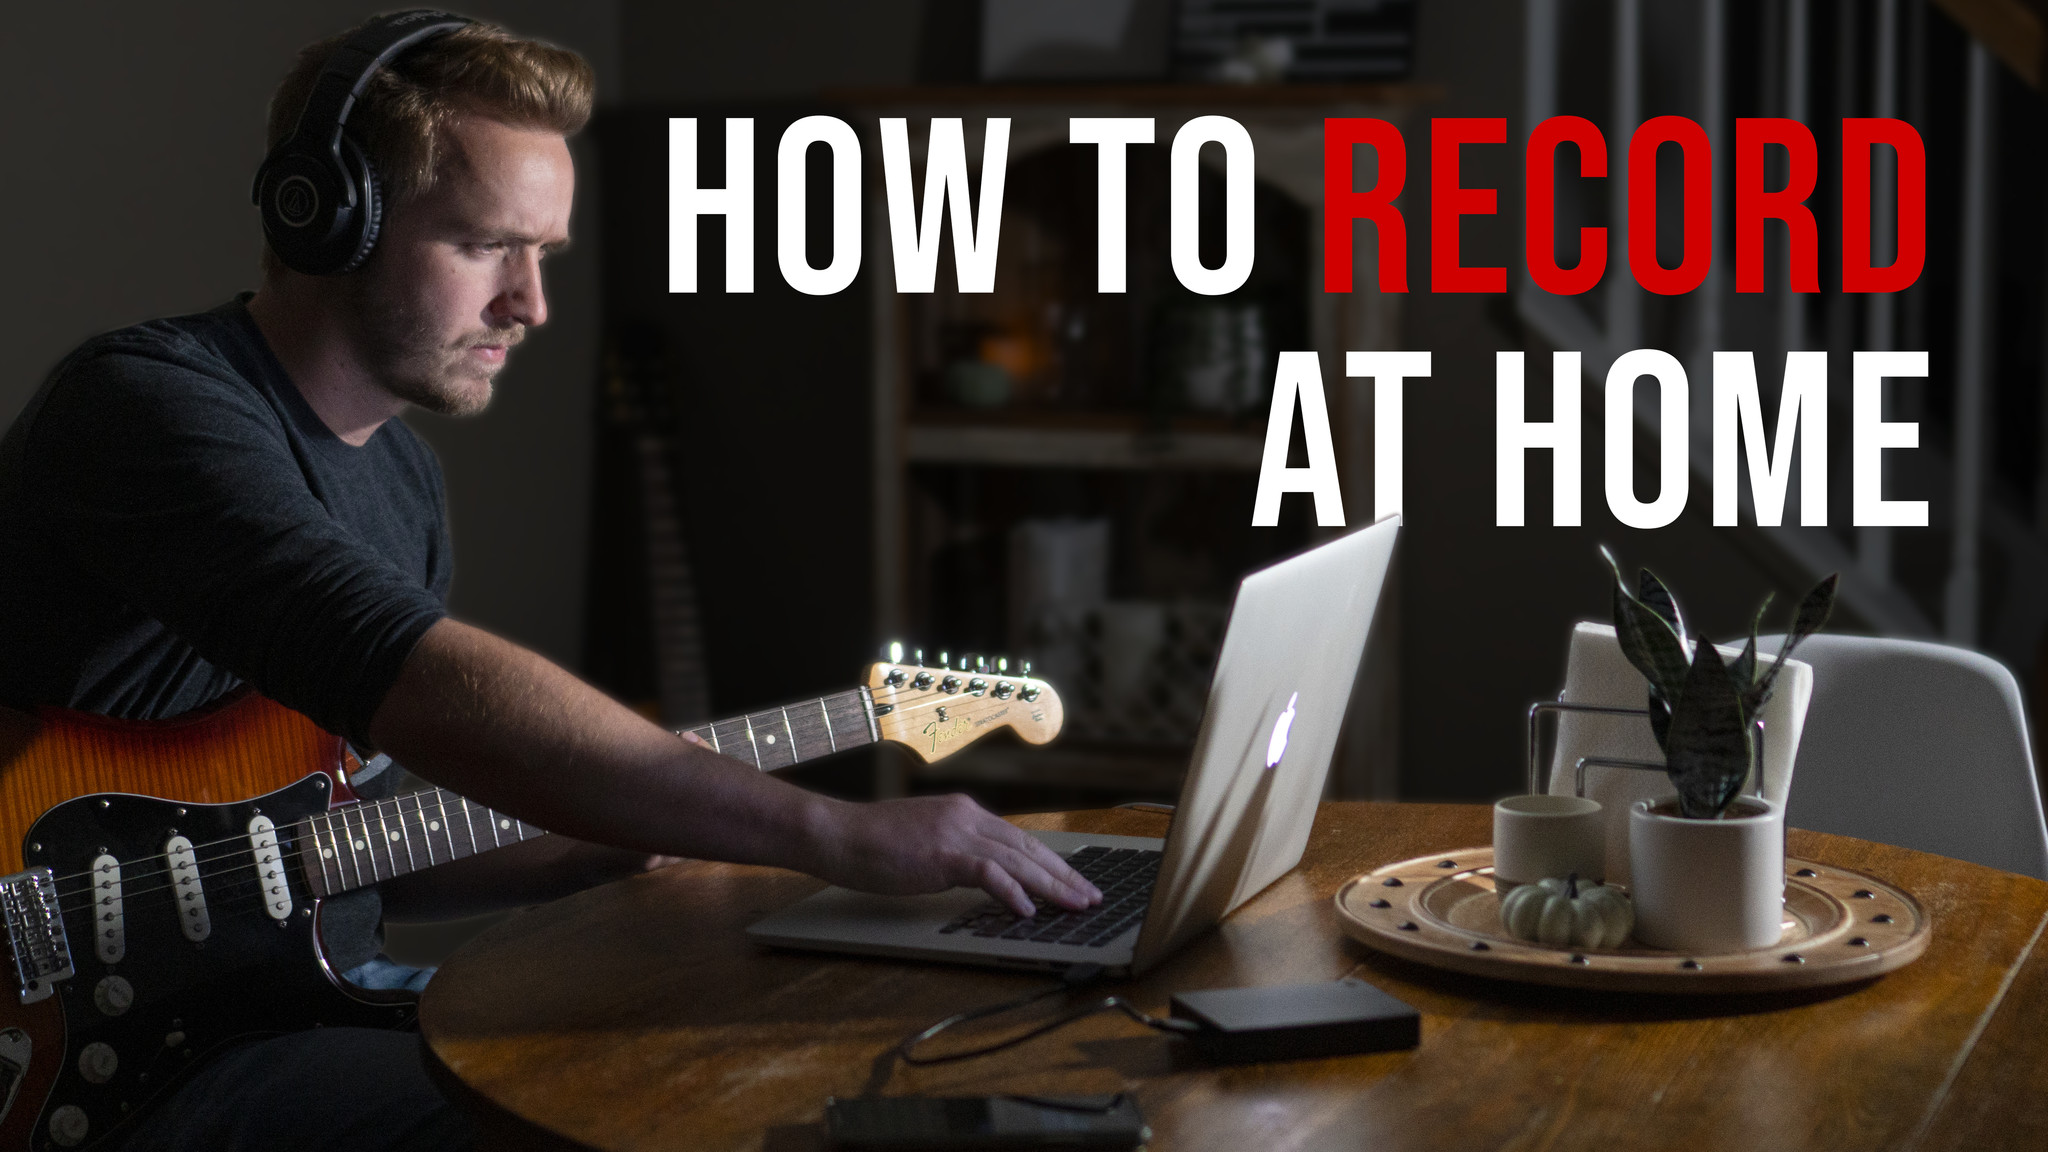 How to Record at Home